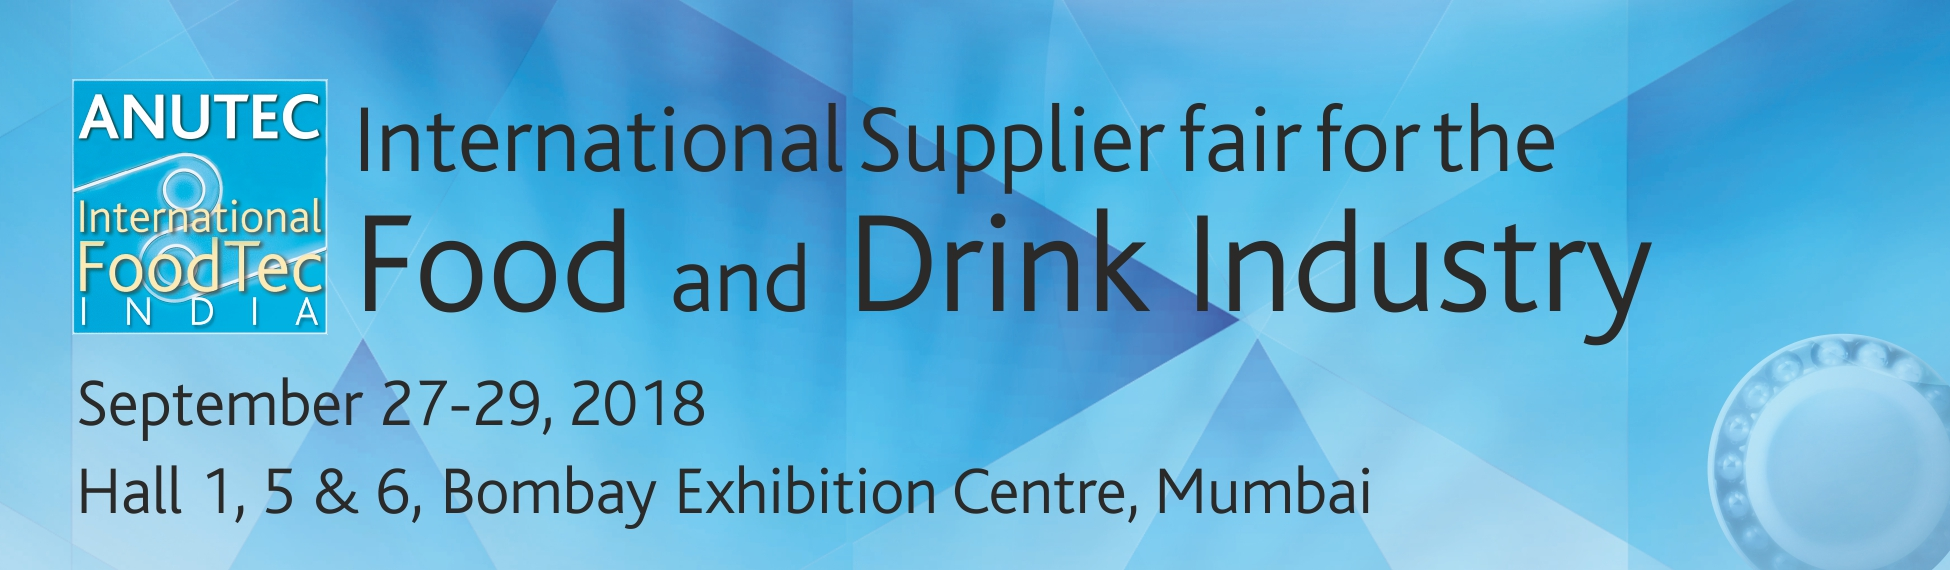 International Supplier fair for the food and drink industry